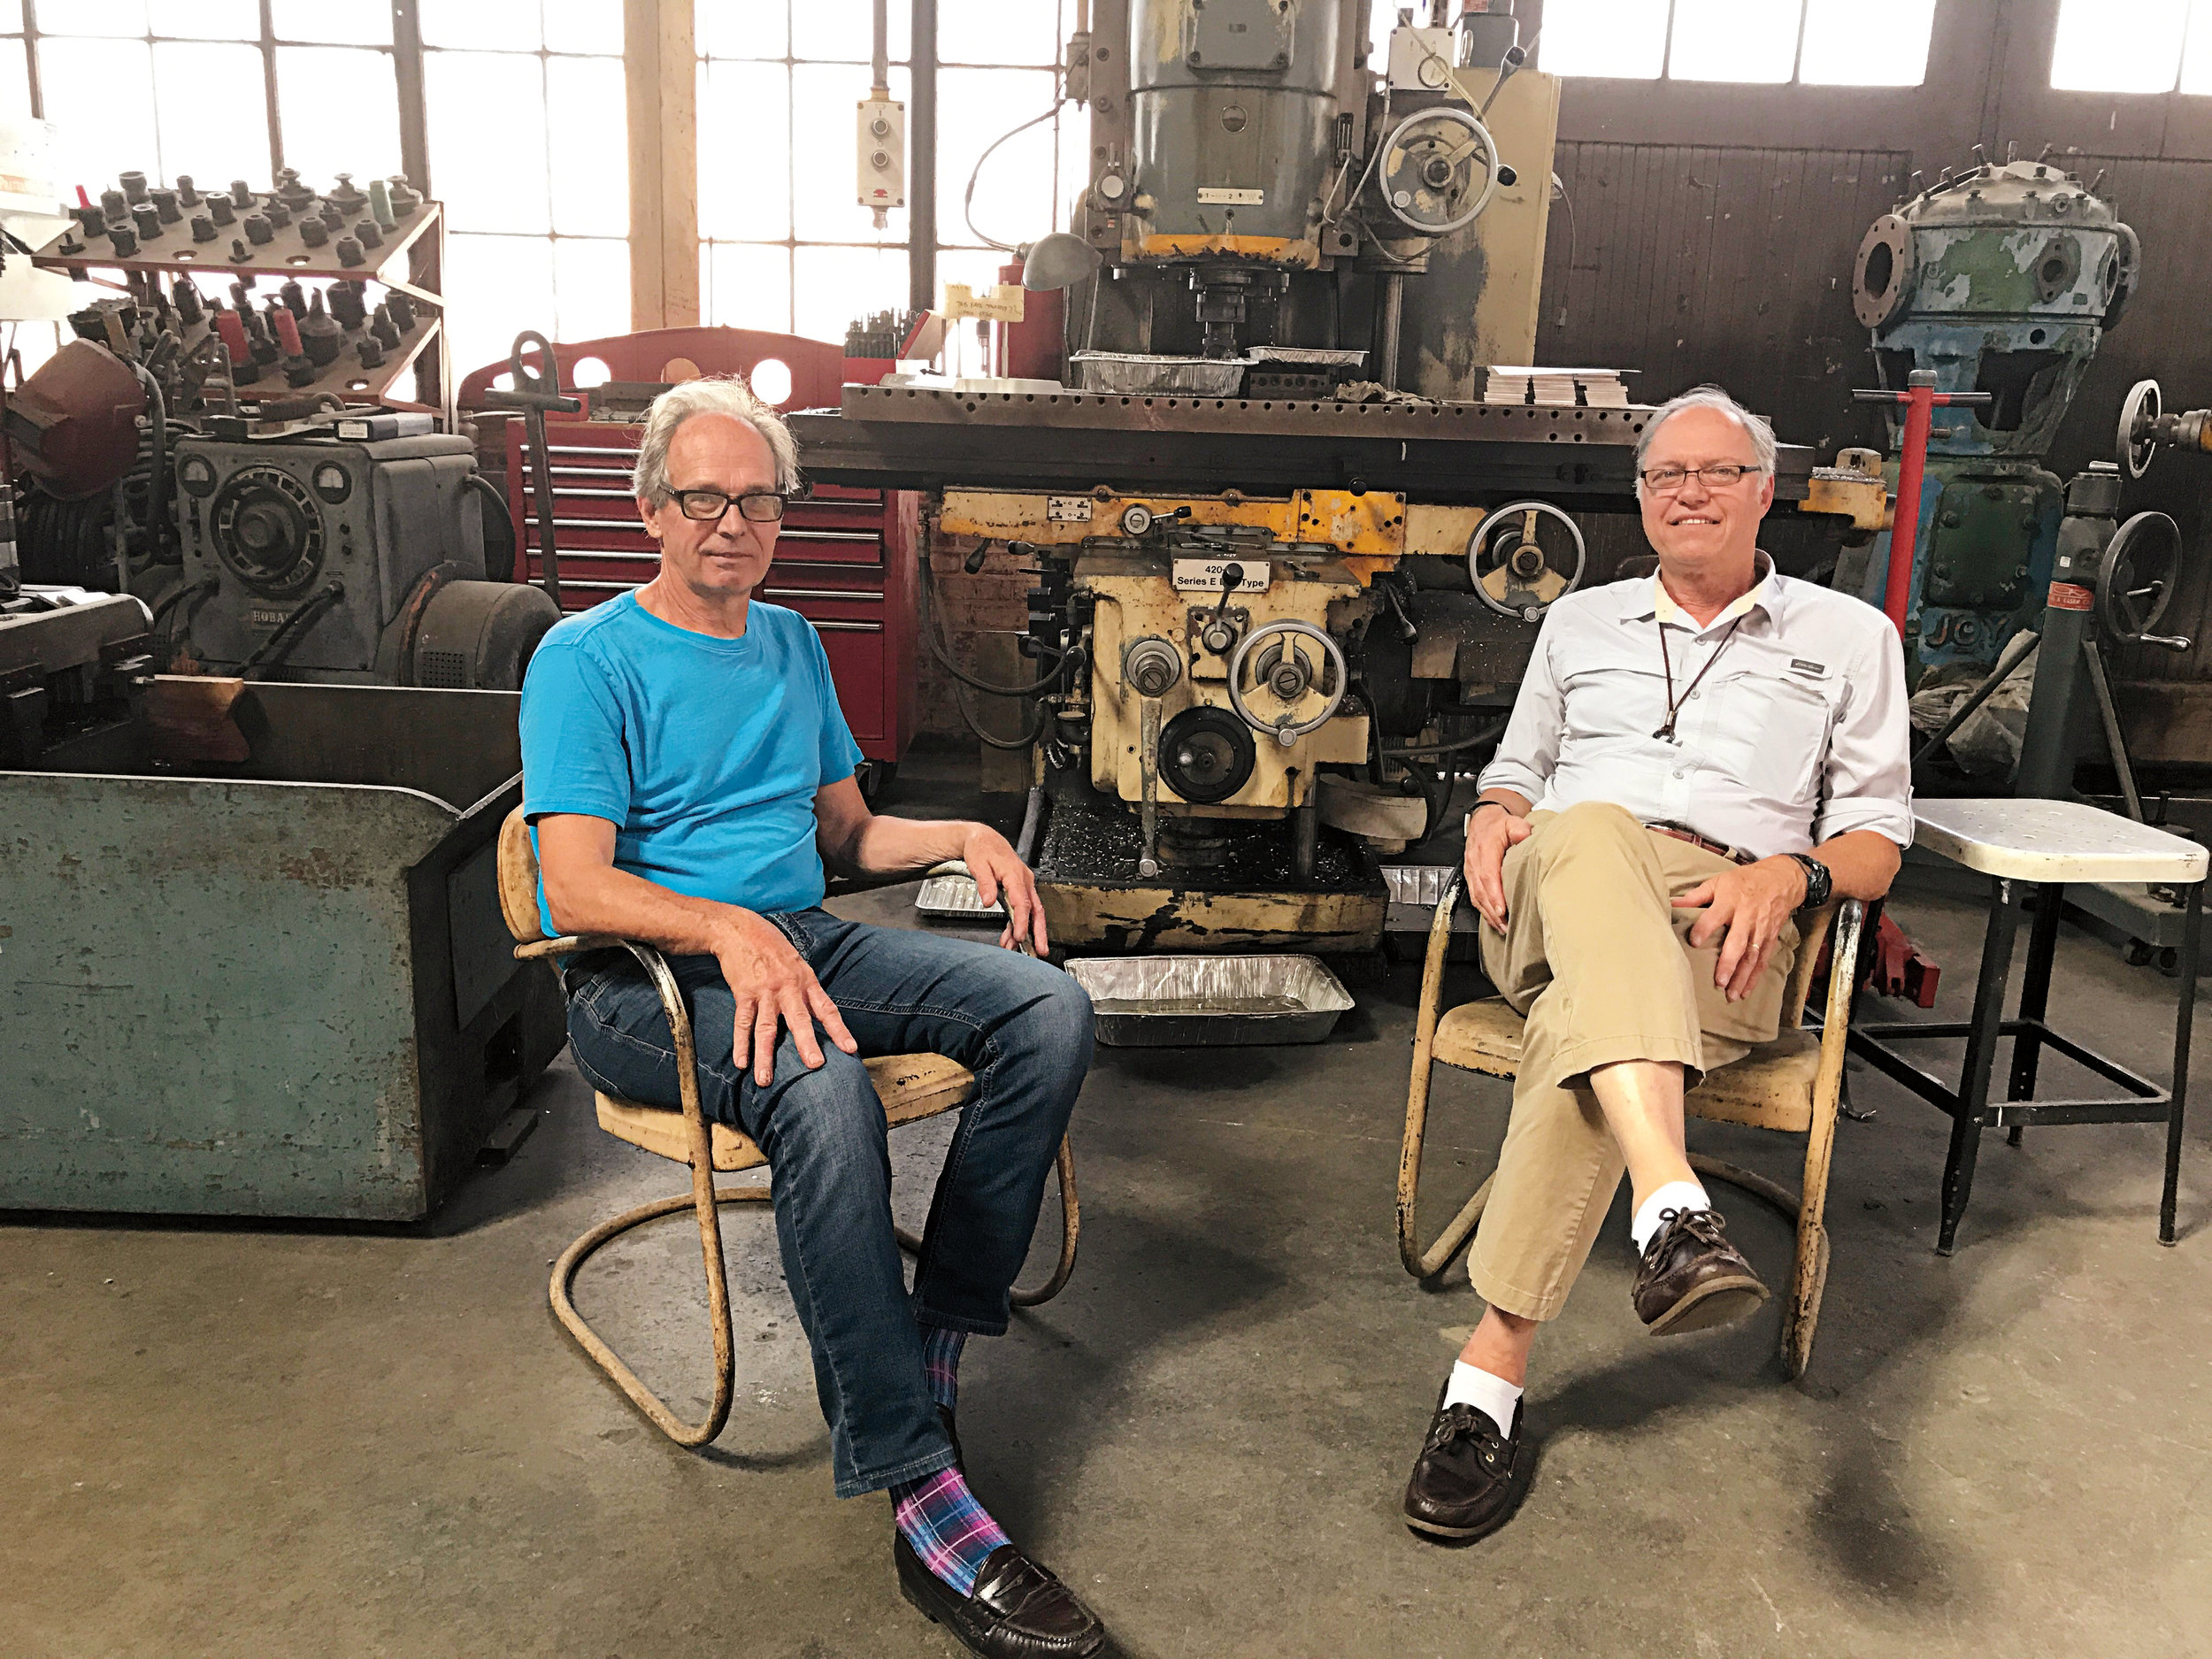 Roy Thurston '68 (l.) with Tom Shortall '68 at Roy's studio in Los Angeles.